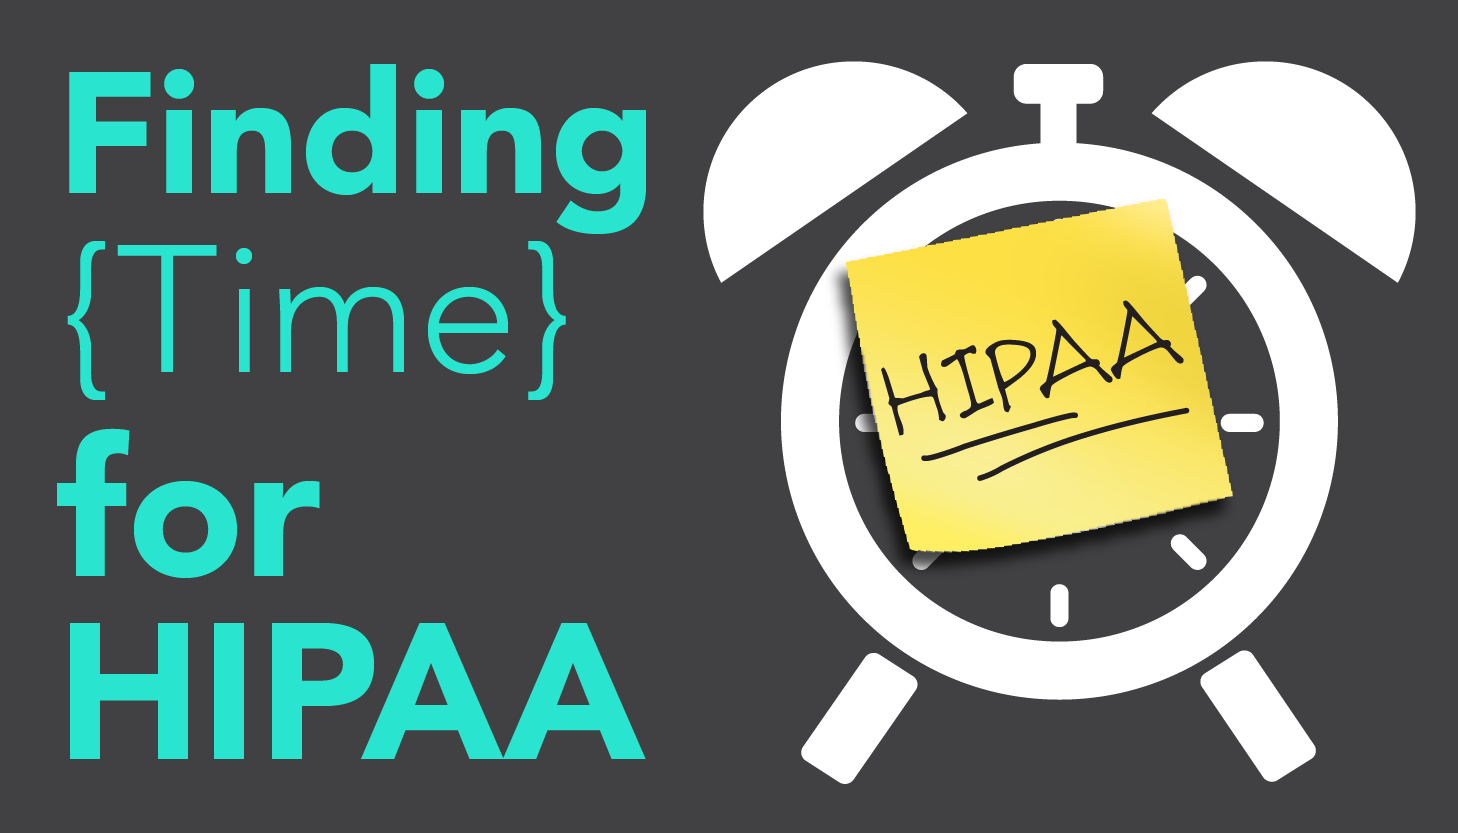 Find time for HIPAA compliance